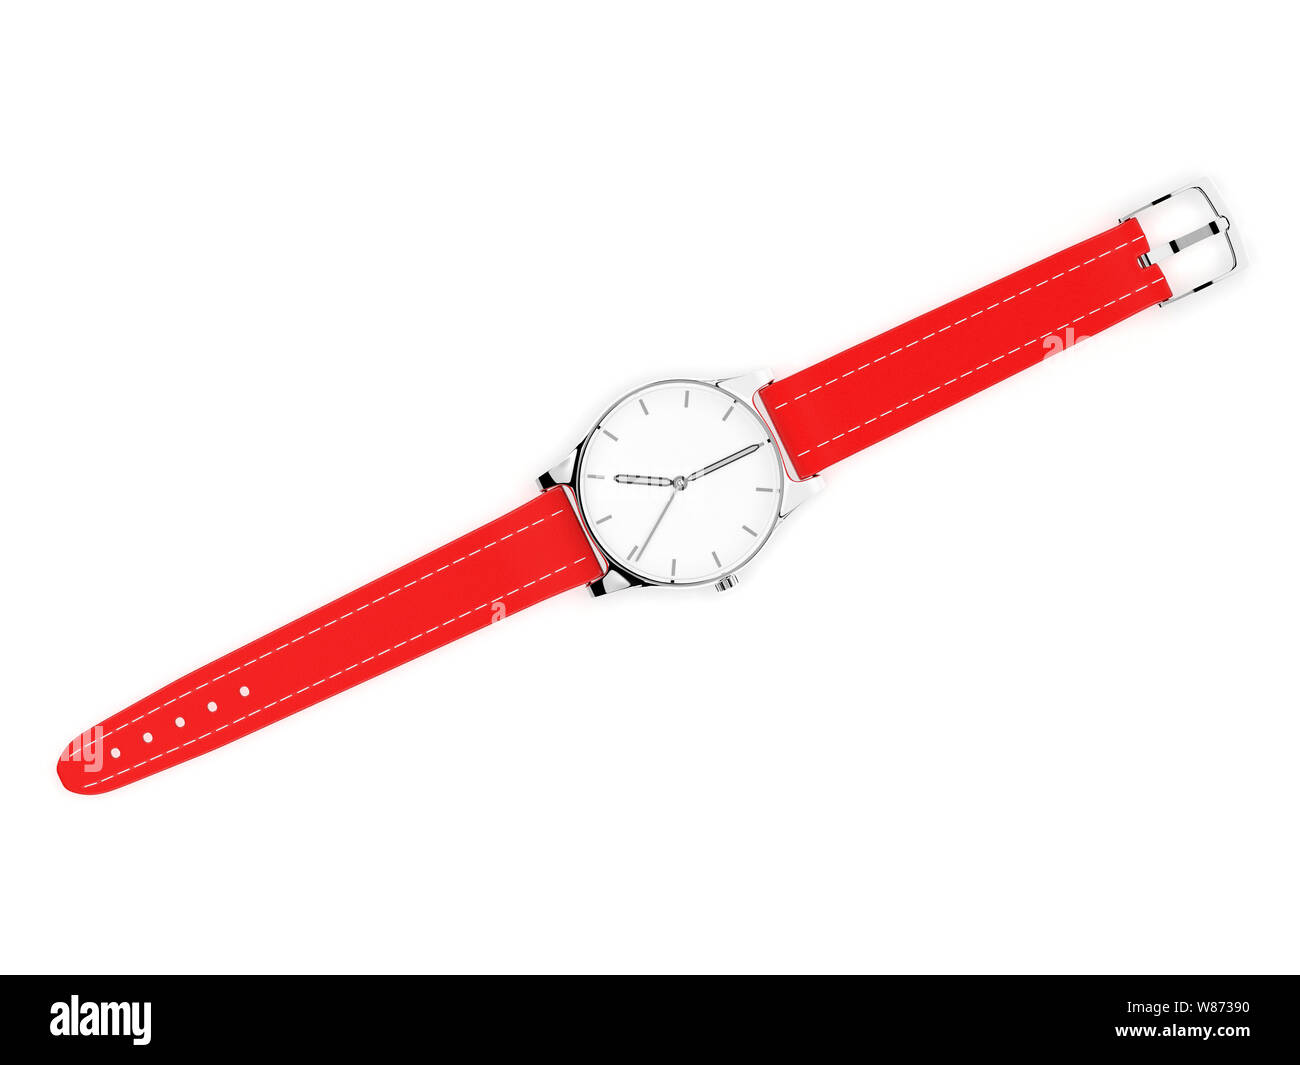 Wrist watch with unbuckled bracelet. White dial with metal case and red leather band Stock Photo